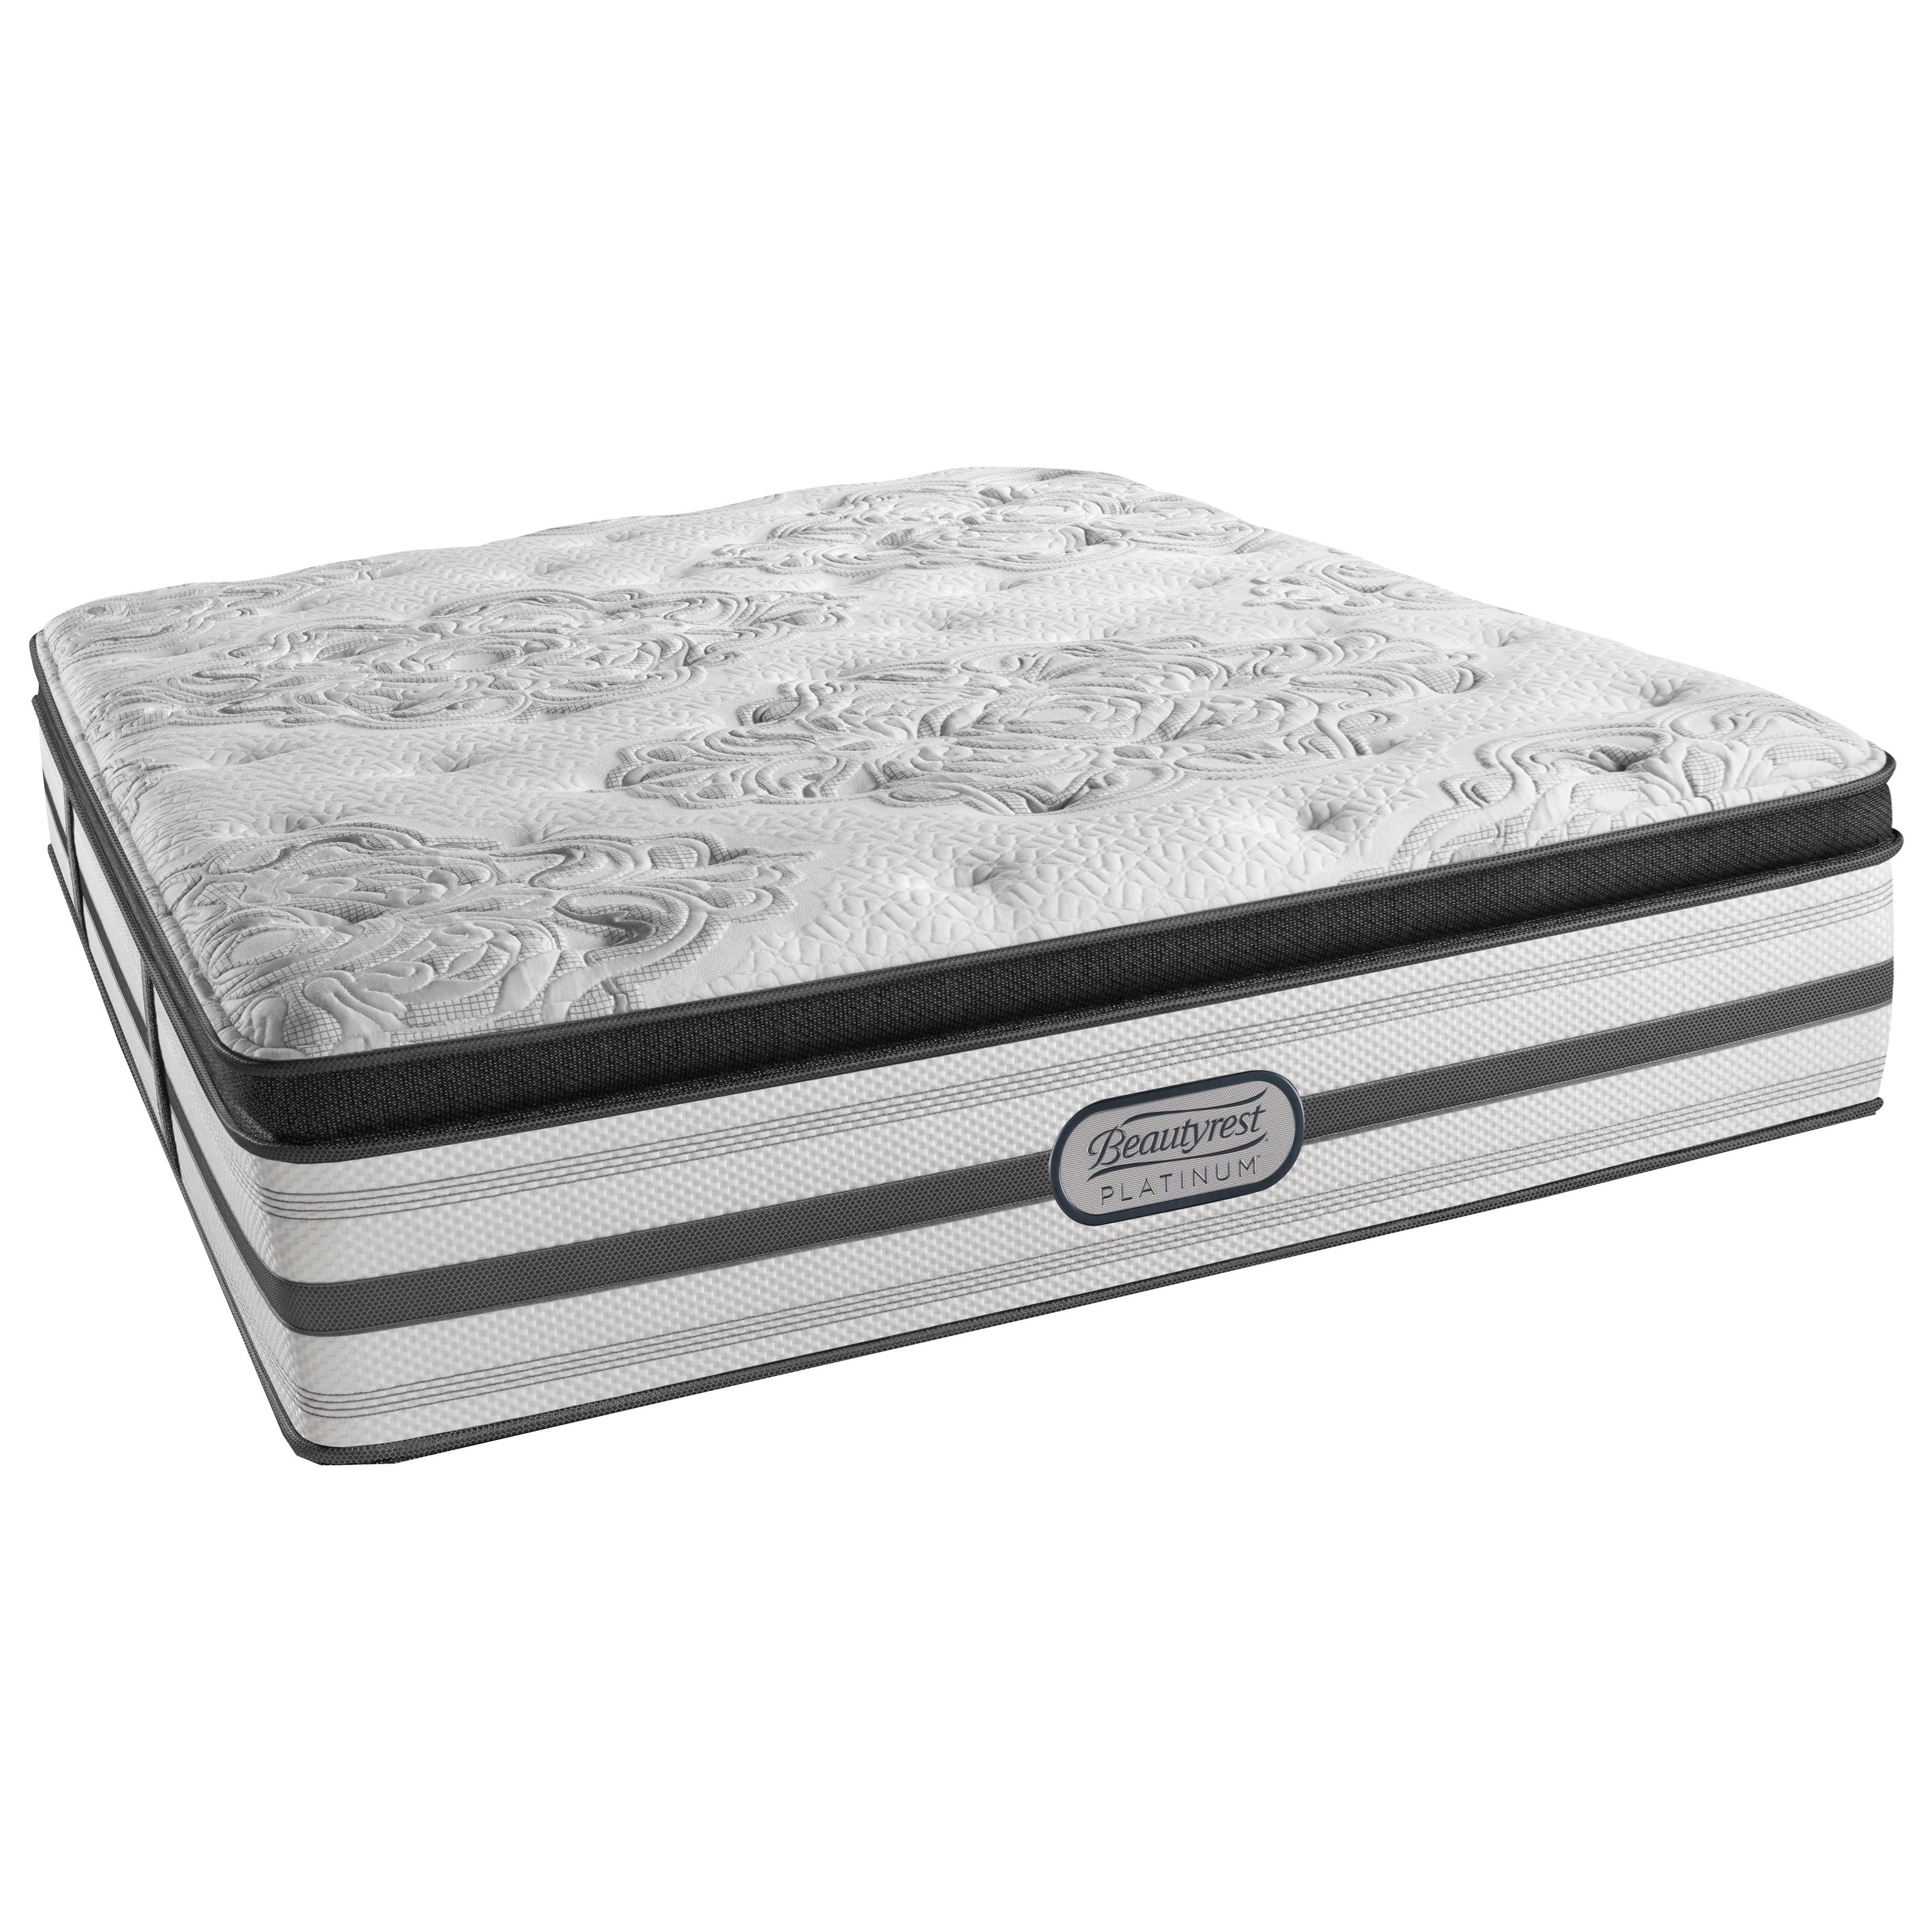 Beautyrest Platinum Gabriella Twin XL Plush Pillow Top Adjustable Set - Item Number: LV3PLPT-TXL+SM1-TXL